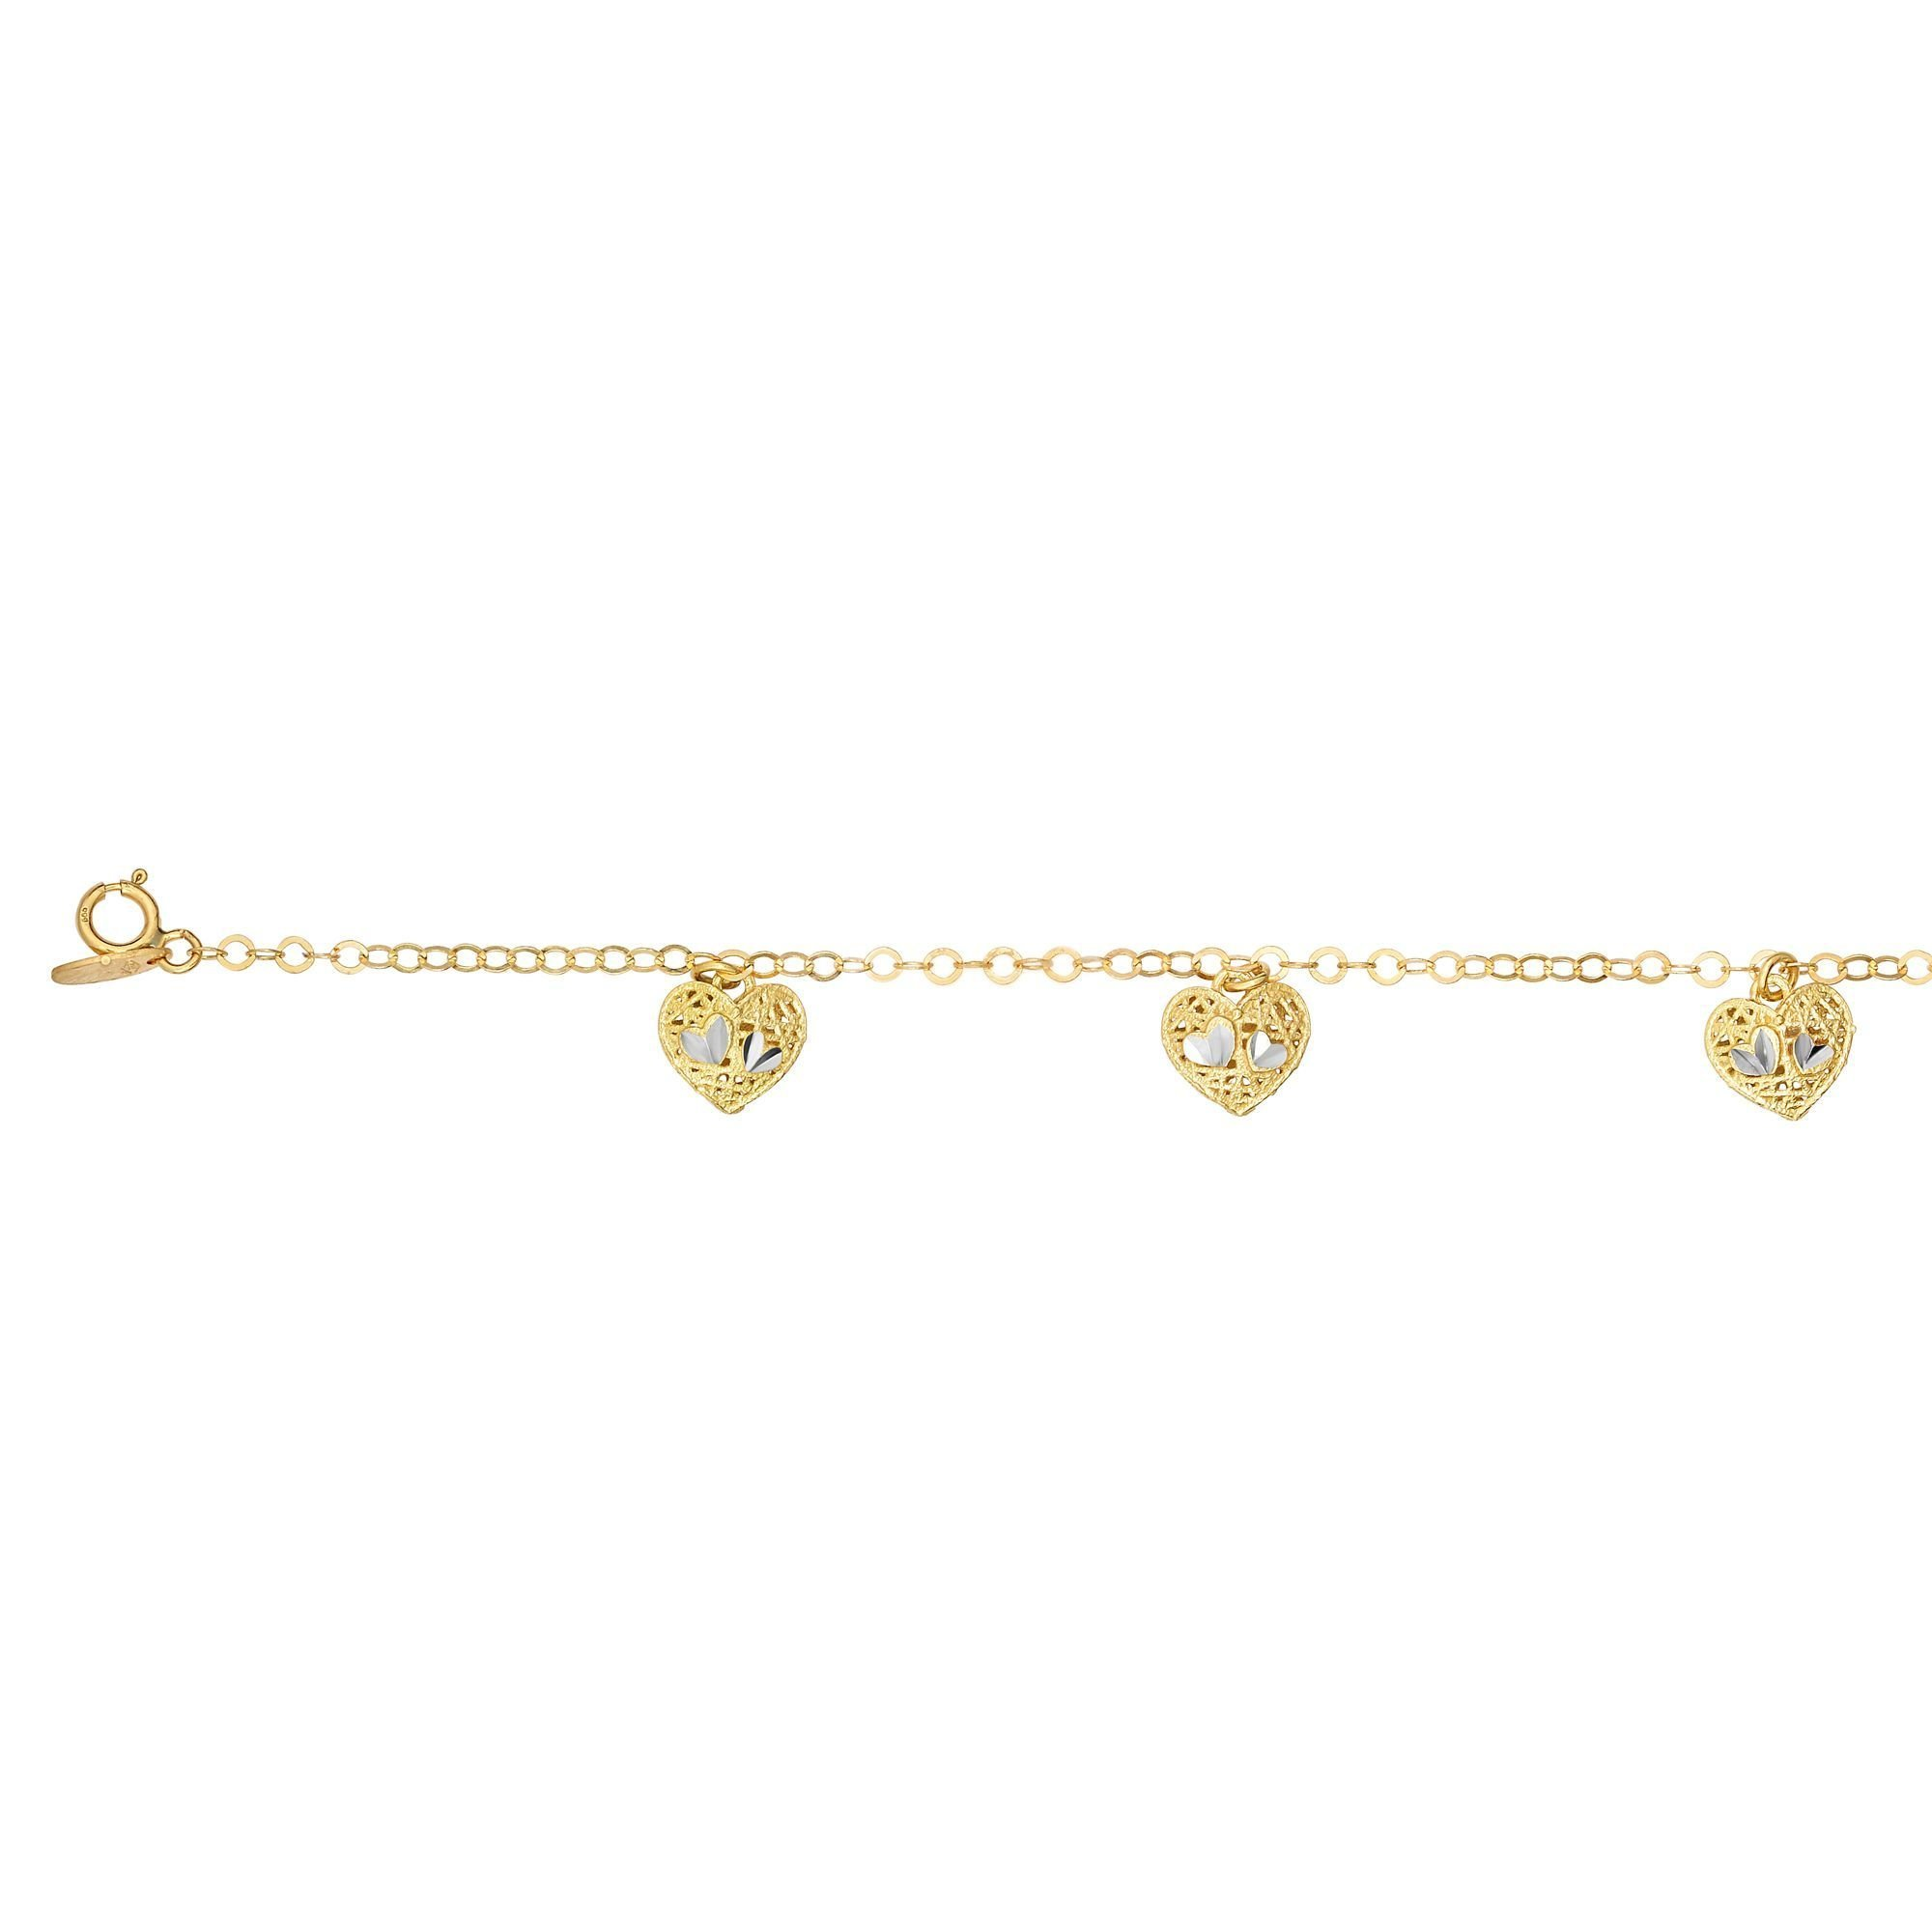 14kt 7.5'' Yellow Gold Diamond Cut 5 Stationed Heart Element on Link Bracelet with Lobster Clasp